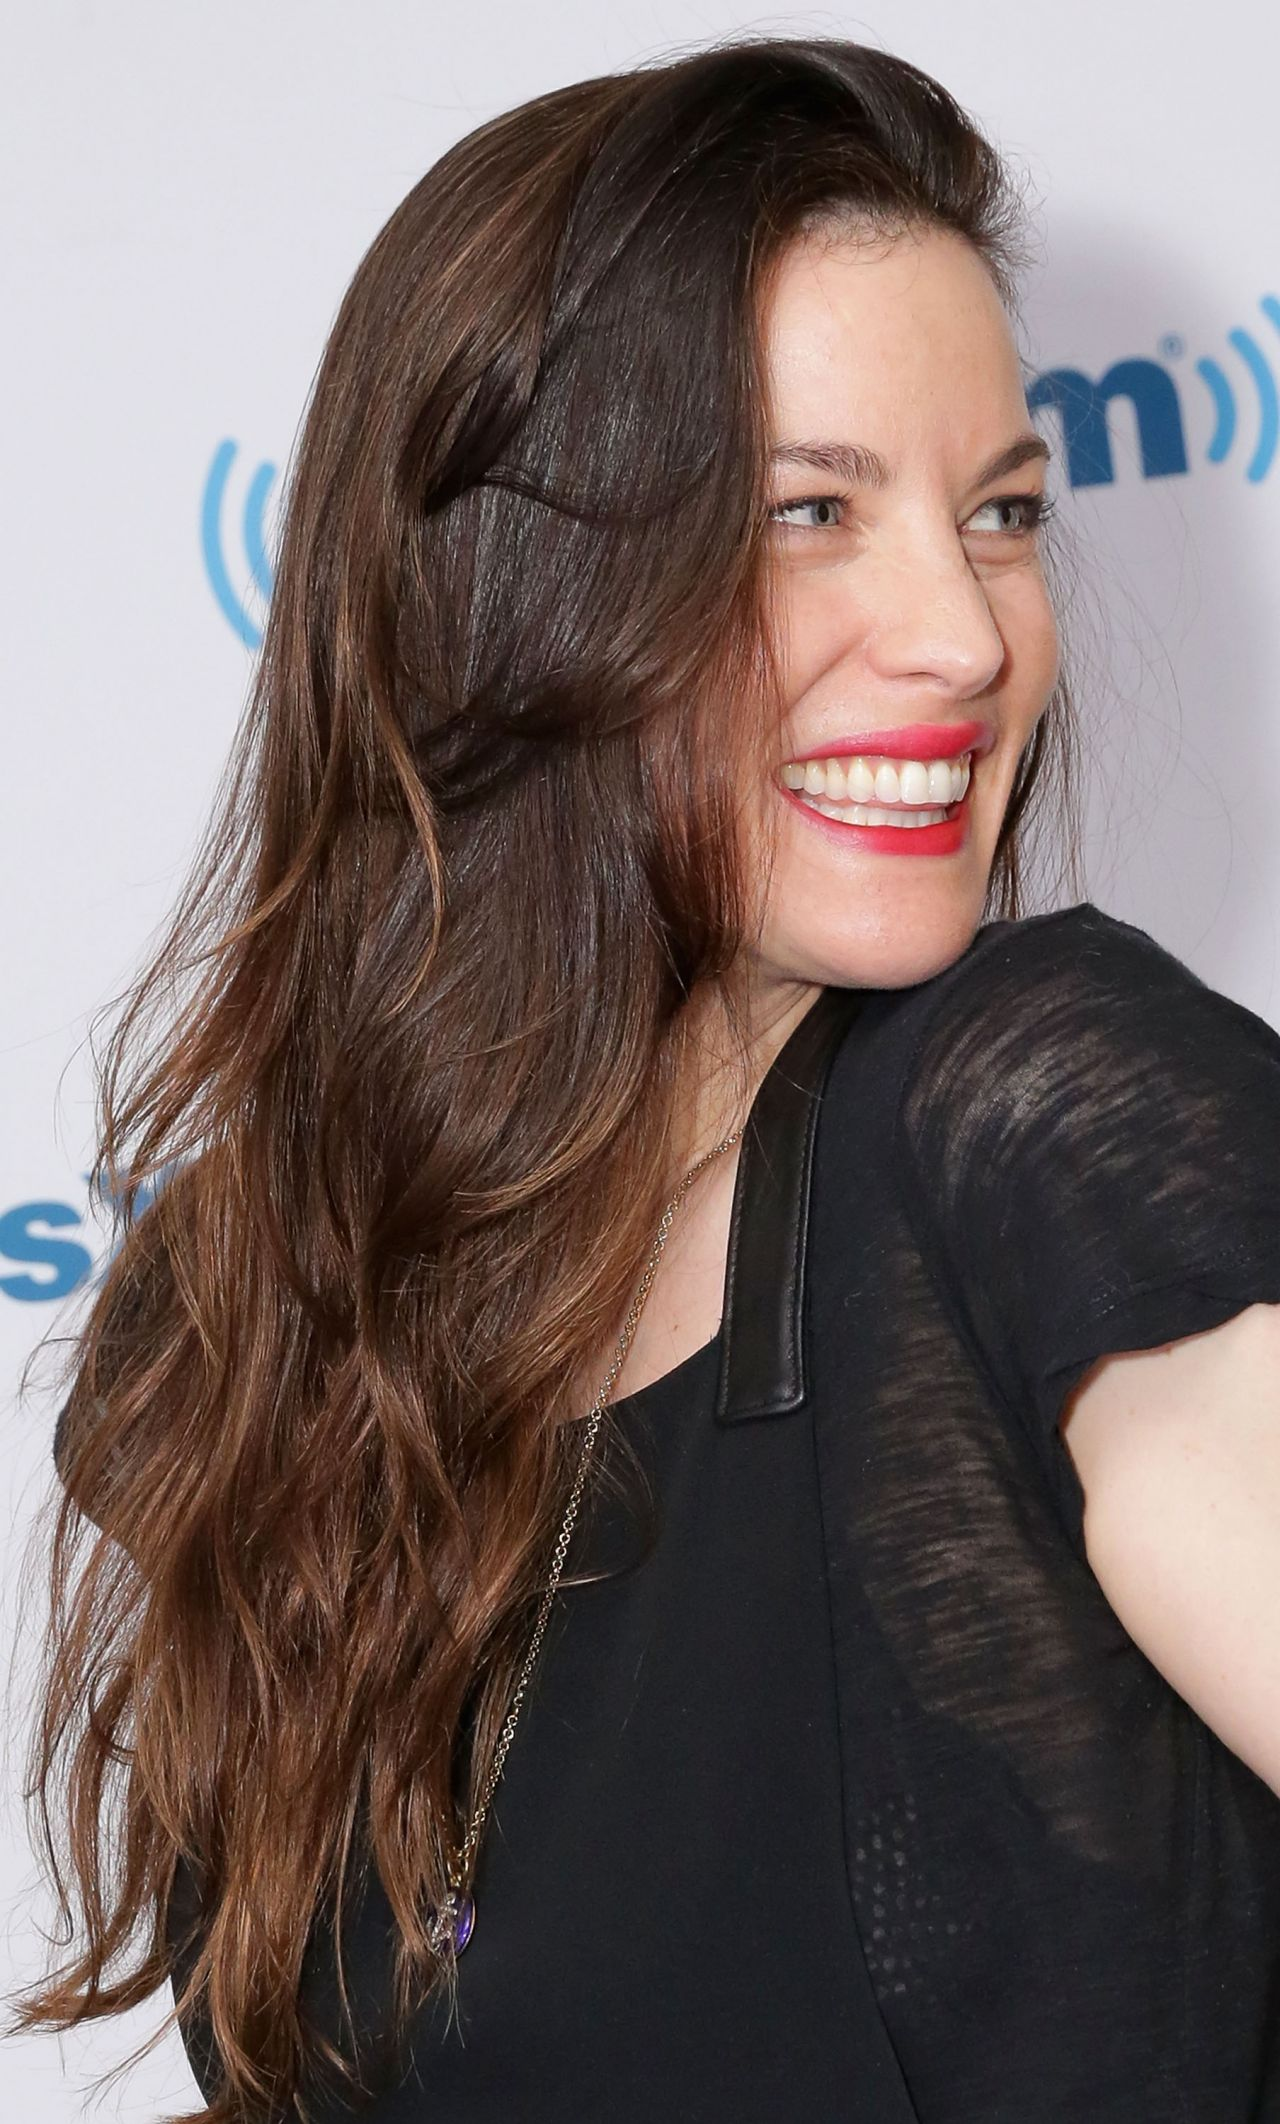 Liv Tyler at SiriusXM Studio in New York City – July 2014 Liv Tyler